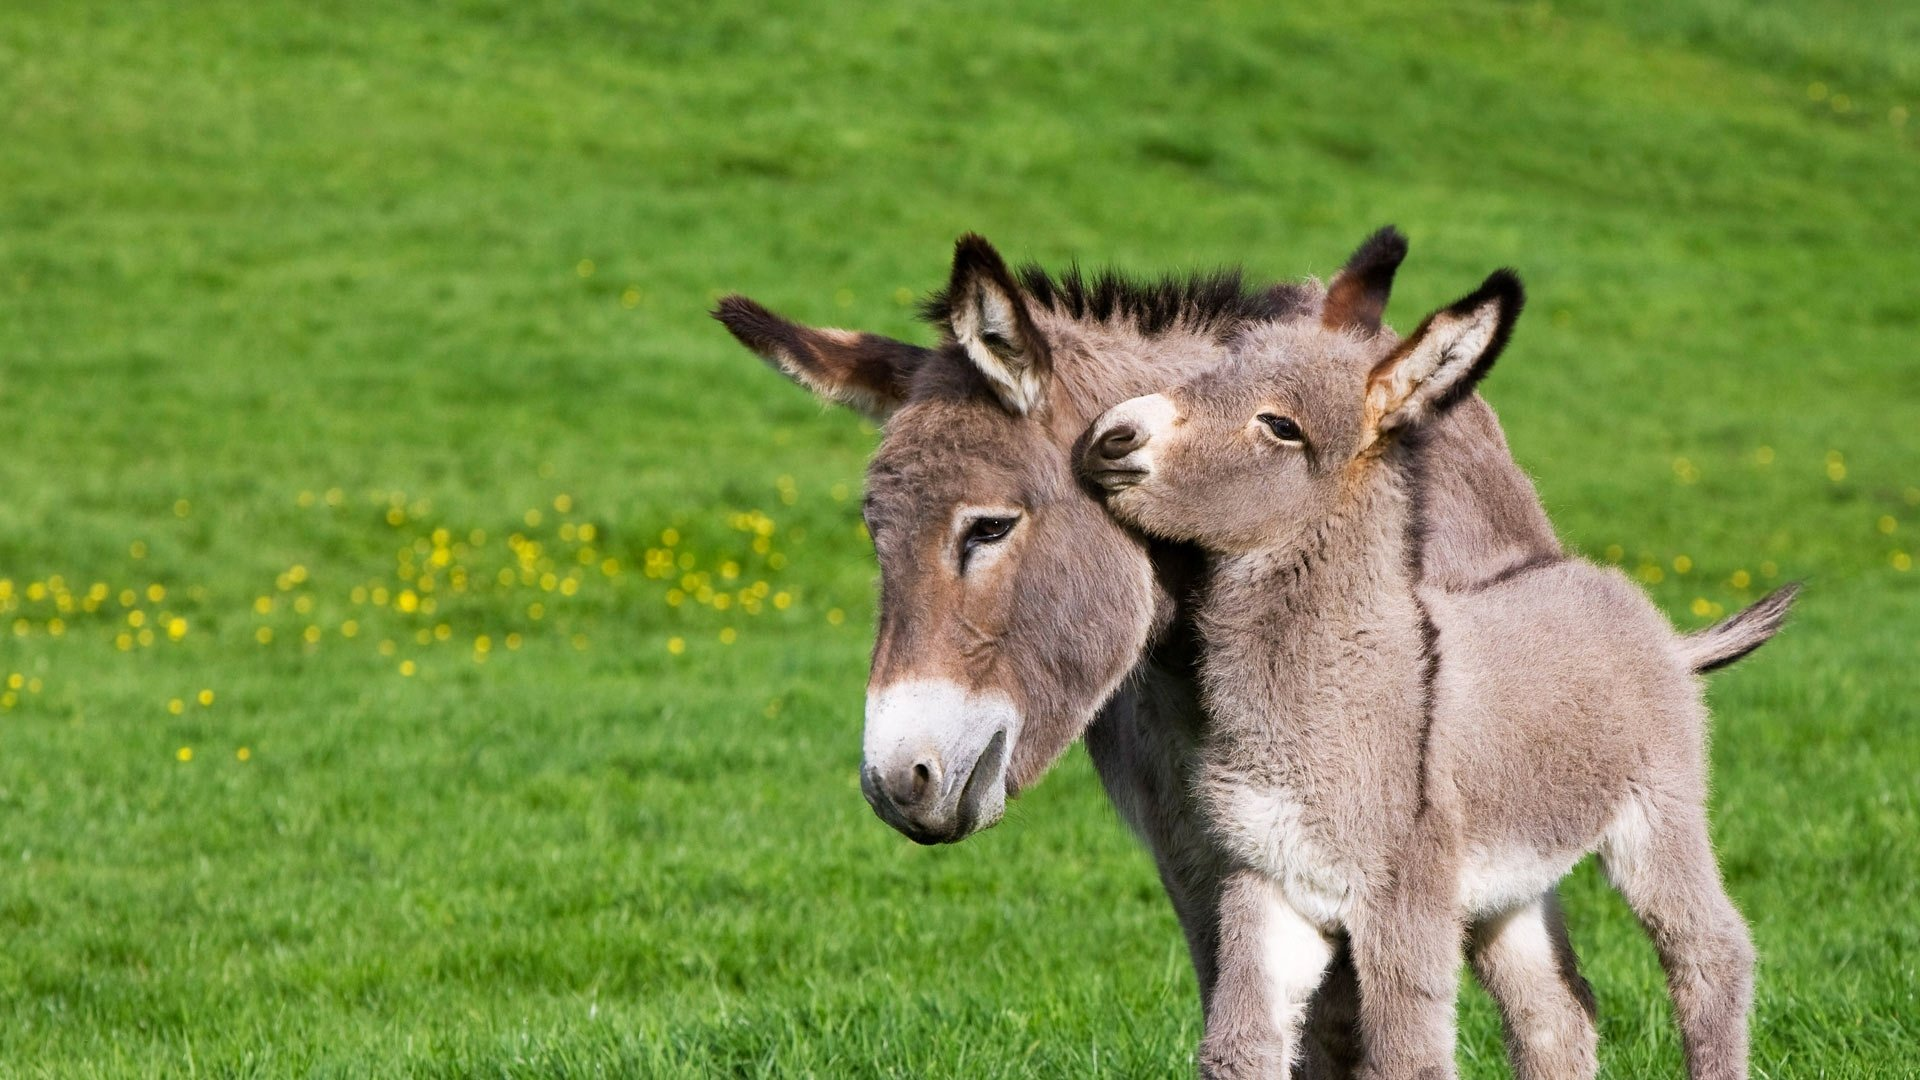 Donkey Full HD Wallpaper And Background Image